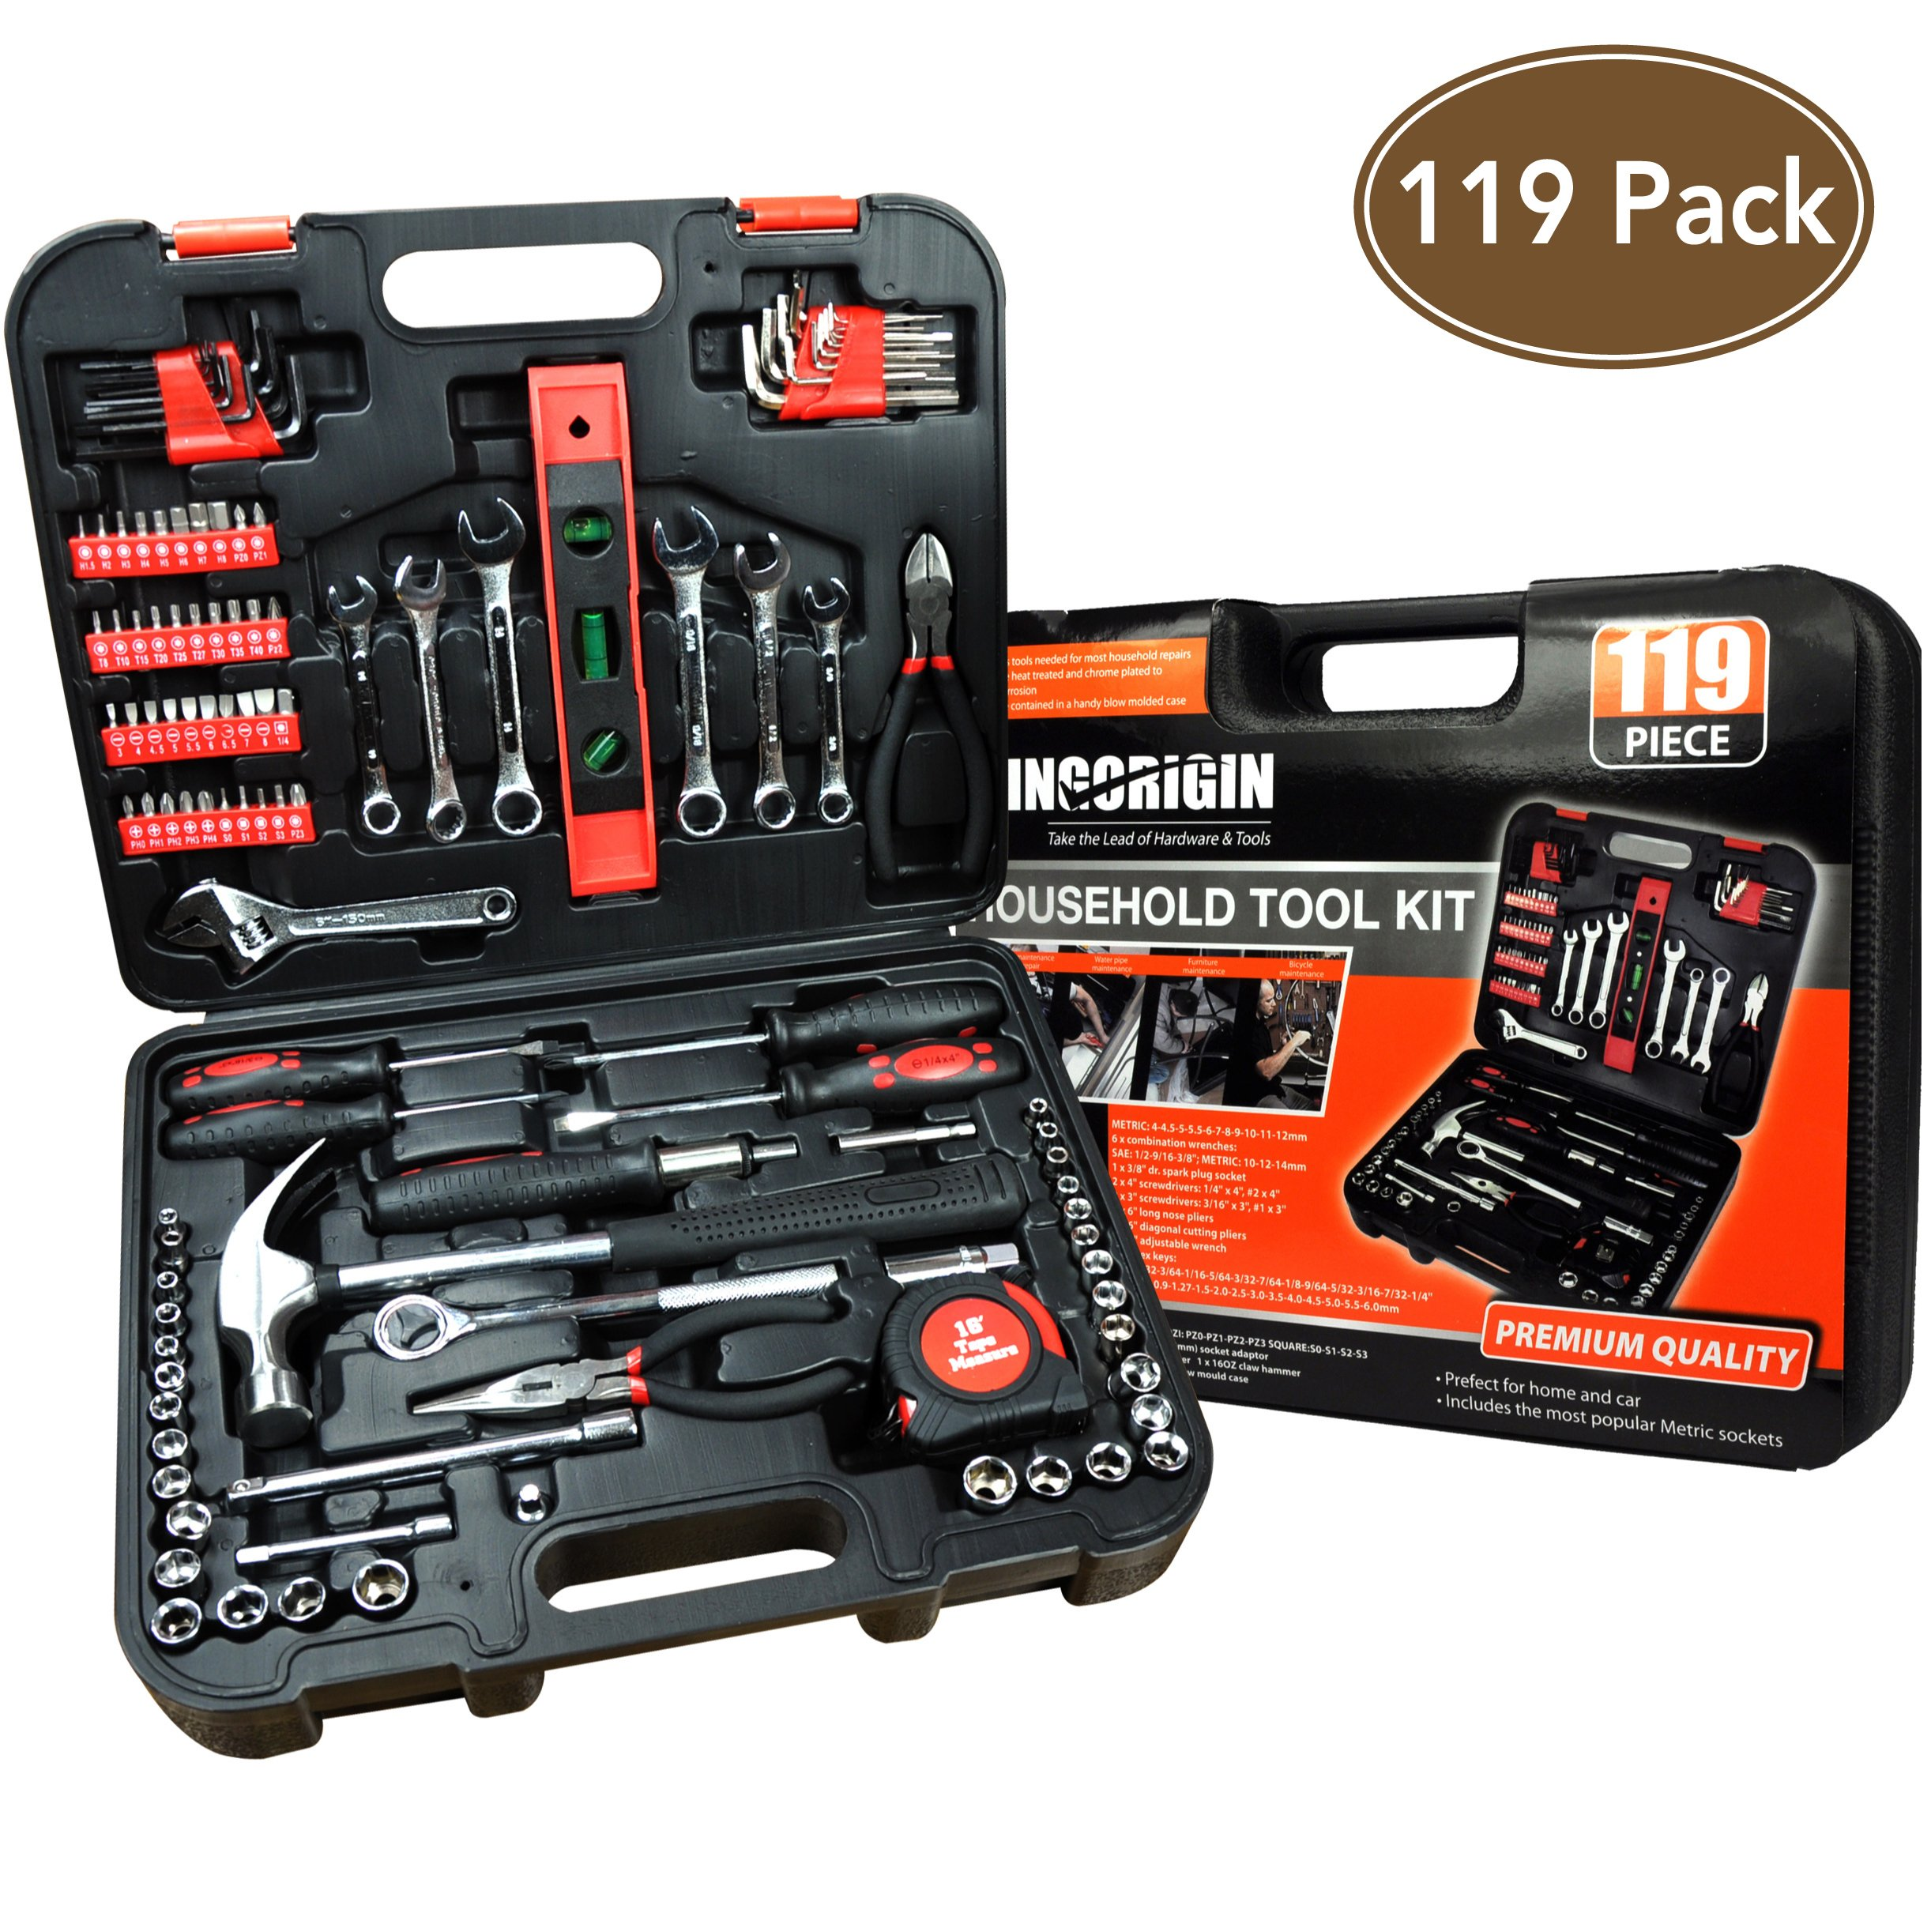 119Piece Heavy Duty Professional Home Repair Tool Kits,home tool kit,home repair tools,Multi Tools Set, Homeowner Tool Kits, Tool Sets,Kit,tool kit,tool set,home tool kit,tools